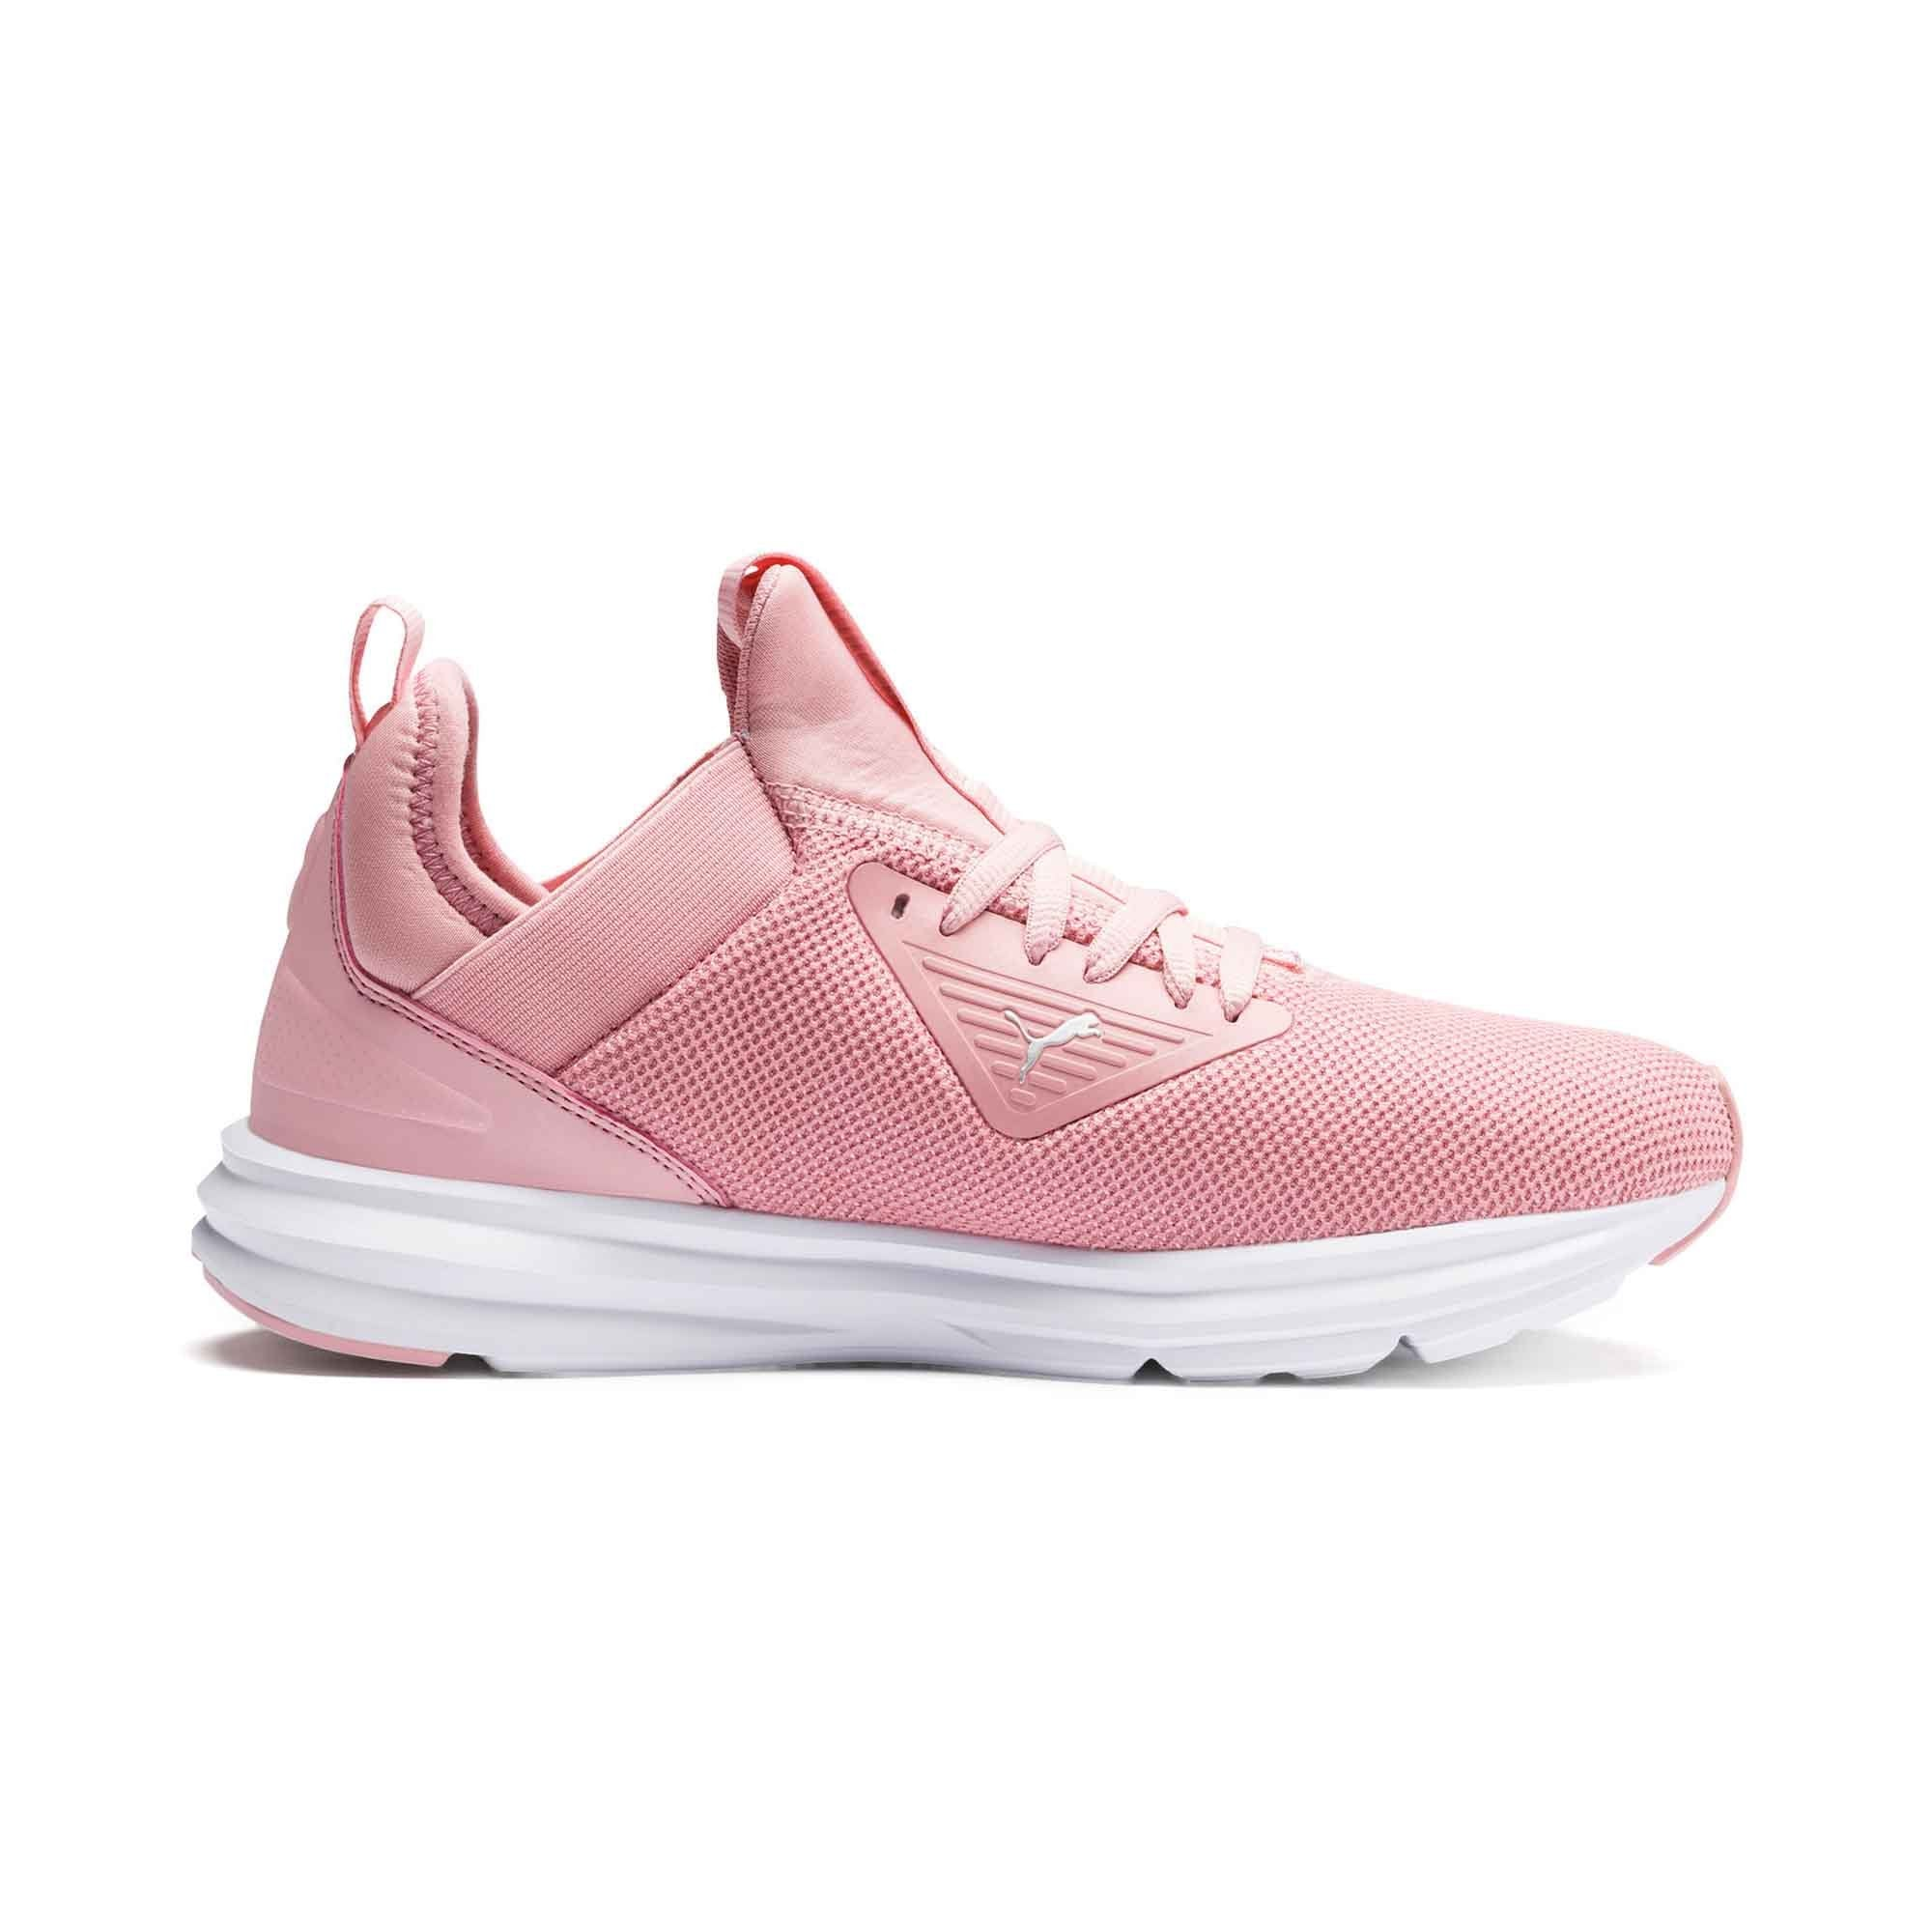 design intemporel 36ebb a13a4 Buy Puma Women Enzo Beta Training Shoes Online in Singapore | Royal  Sporting House